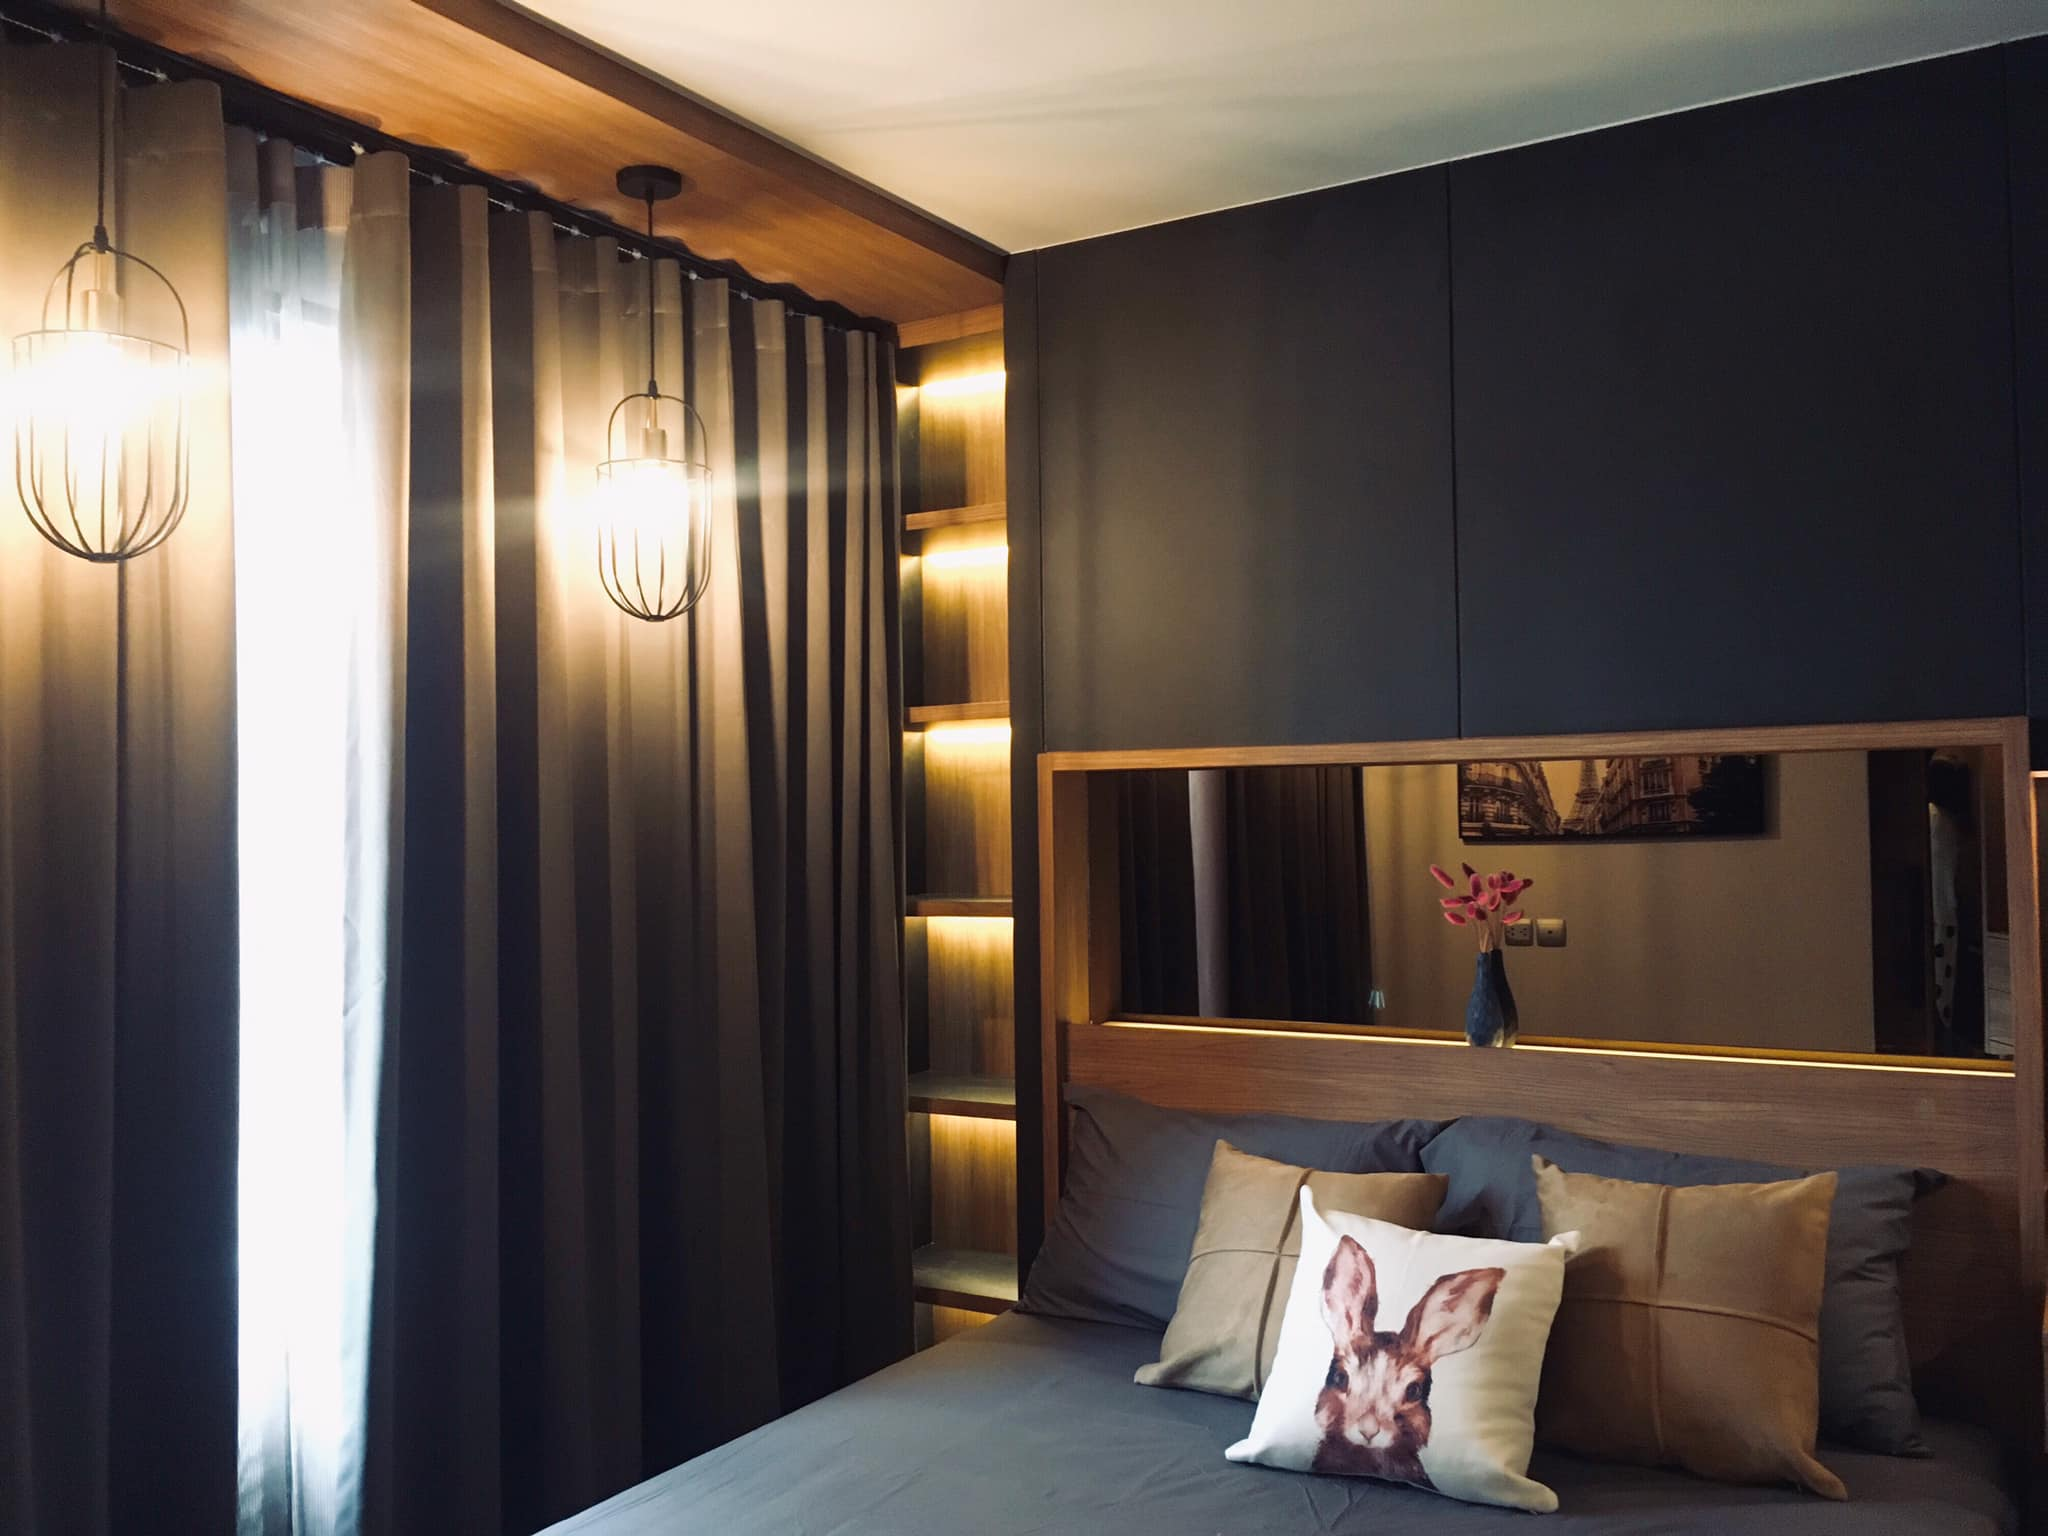 For RentCondoLadprao, Central Ladprao : Condo Life Ladprao Full furnished 1 bedroom elegant and stylish